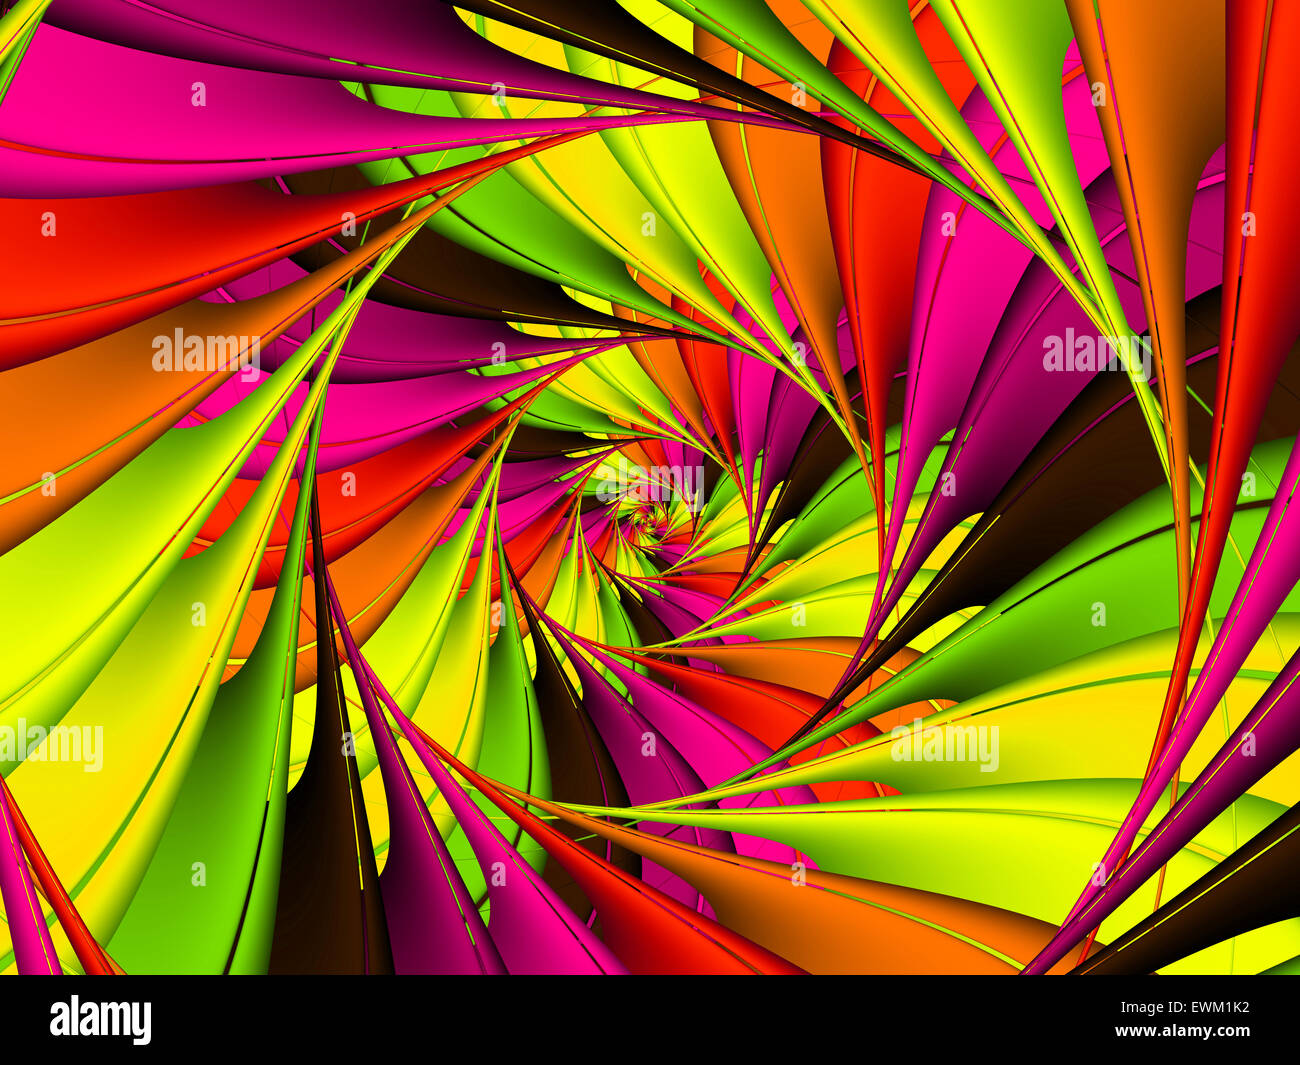 Colorful Fractal Spiral Background Texture - Stock Image